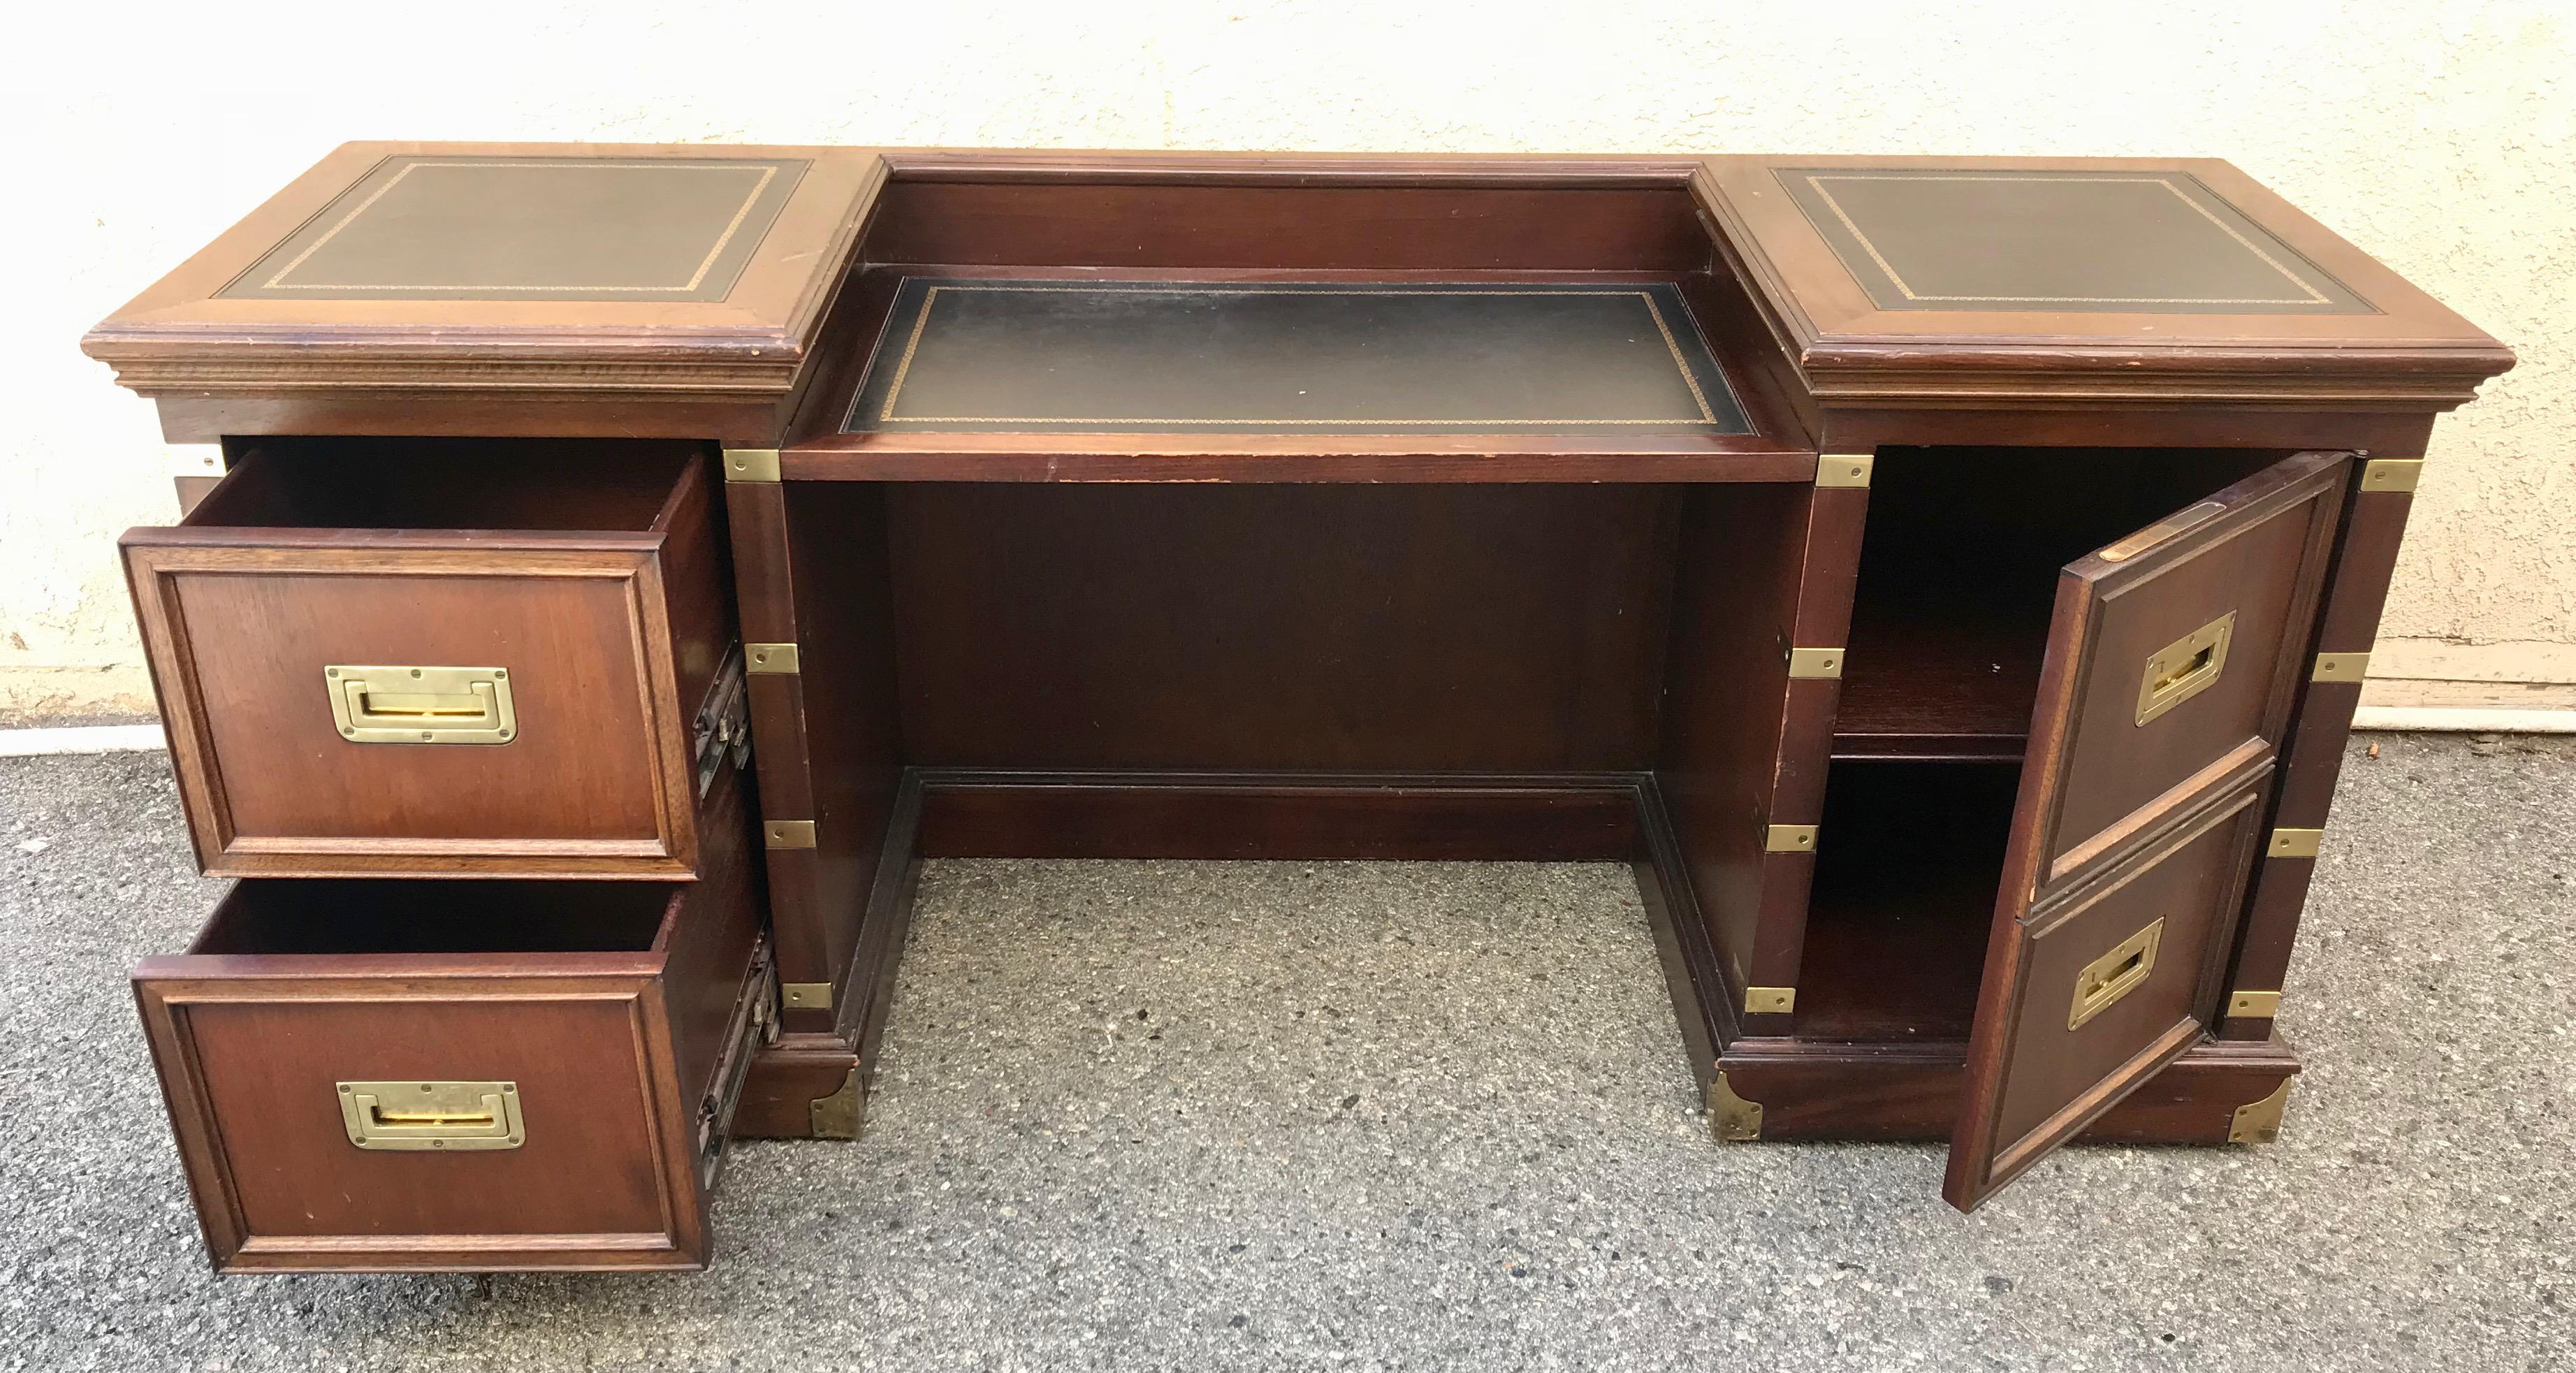 1970s Campaign Executive Desk With Brass Hardware